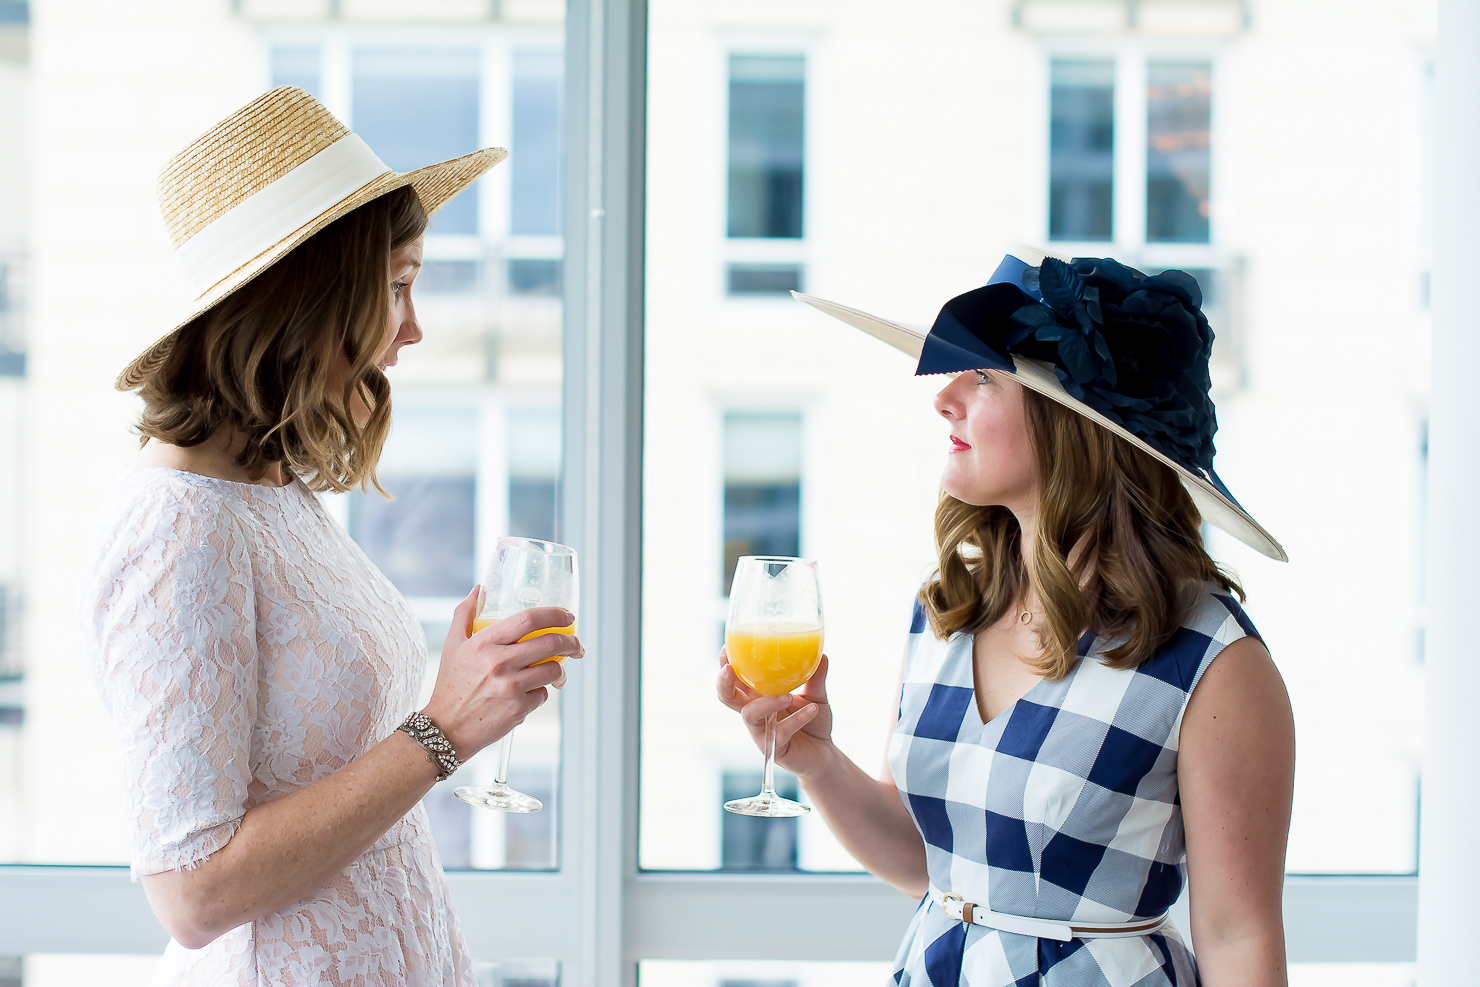 kentucky-derby-party-with-stella-atois-and-rent-the-runway